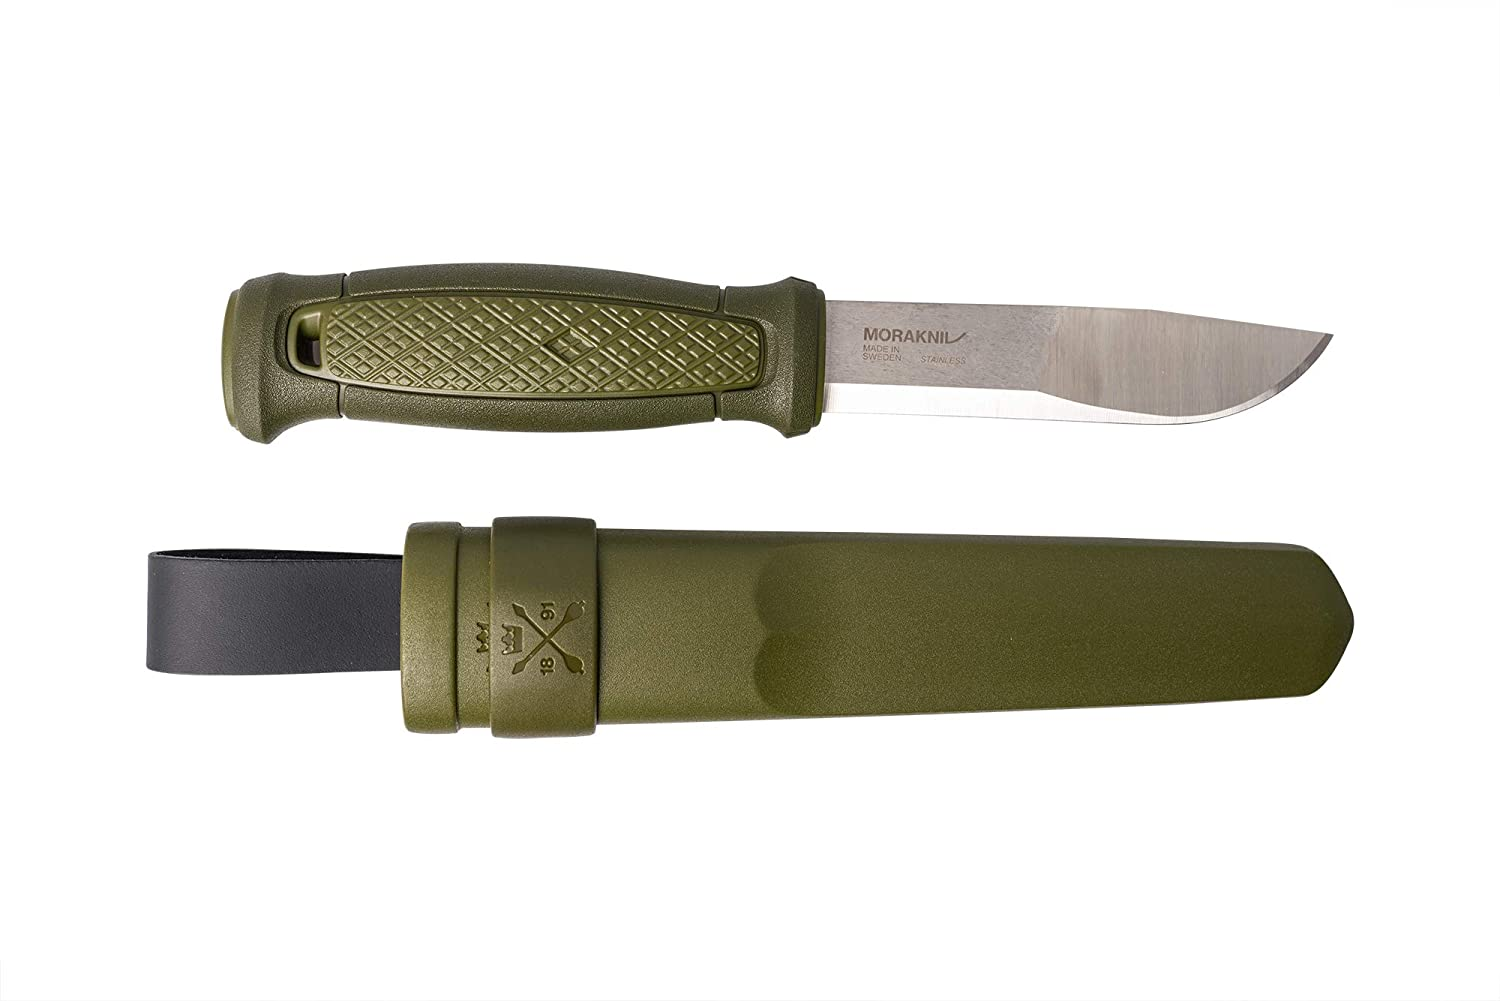 4. MORAKNIV KANSBOL FIXED BLADE KNIFE WITH SANDVIK STAINLESS STEEL BLADE